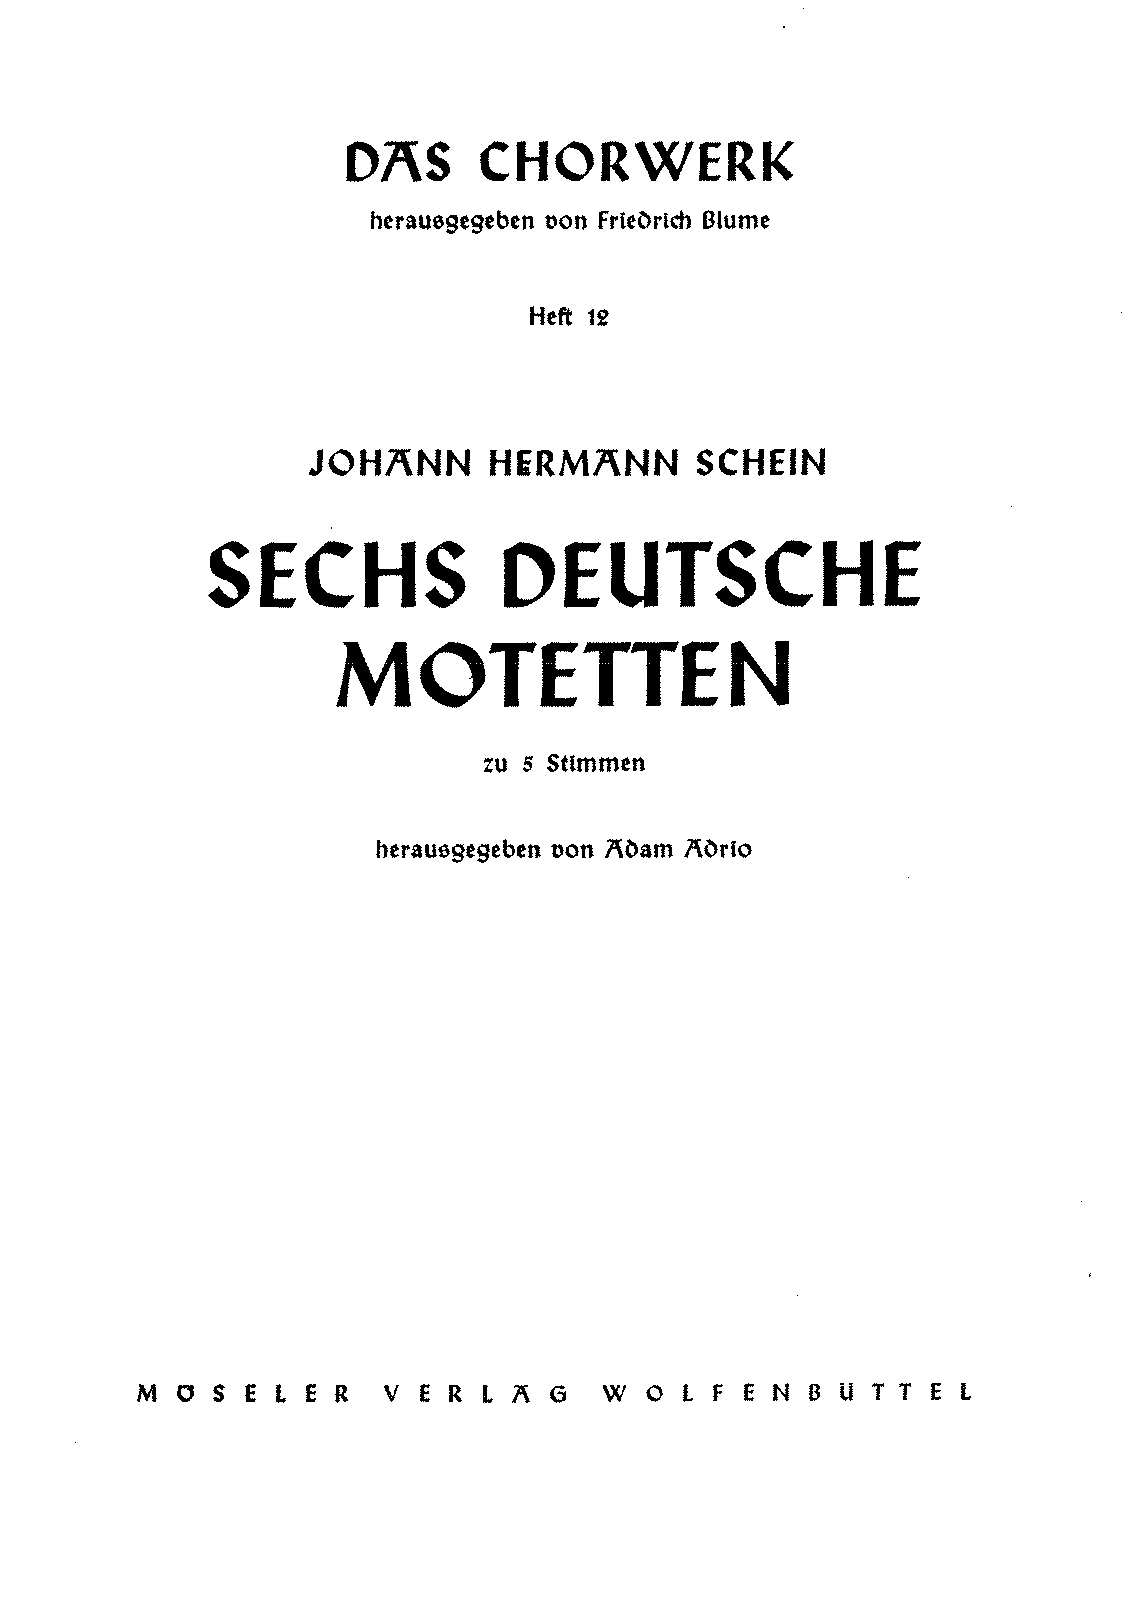 PMLP98985-Das Chorwerk 012 - Schein, Johann Hermann - 6 German Motets a 5 voices.pdf